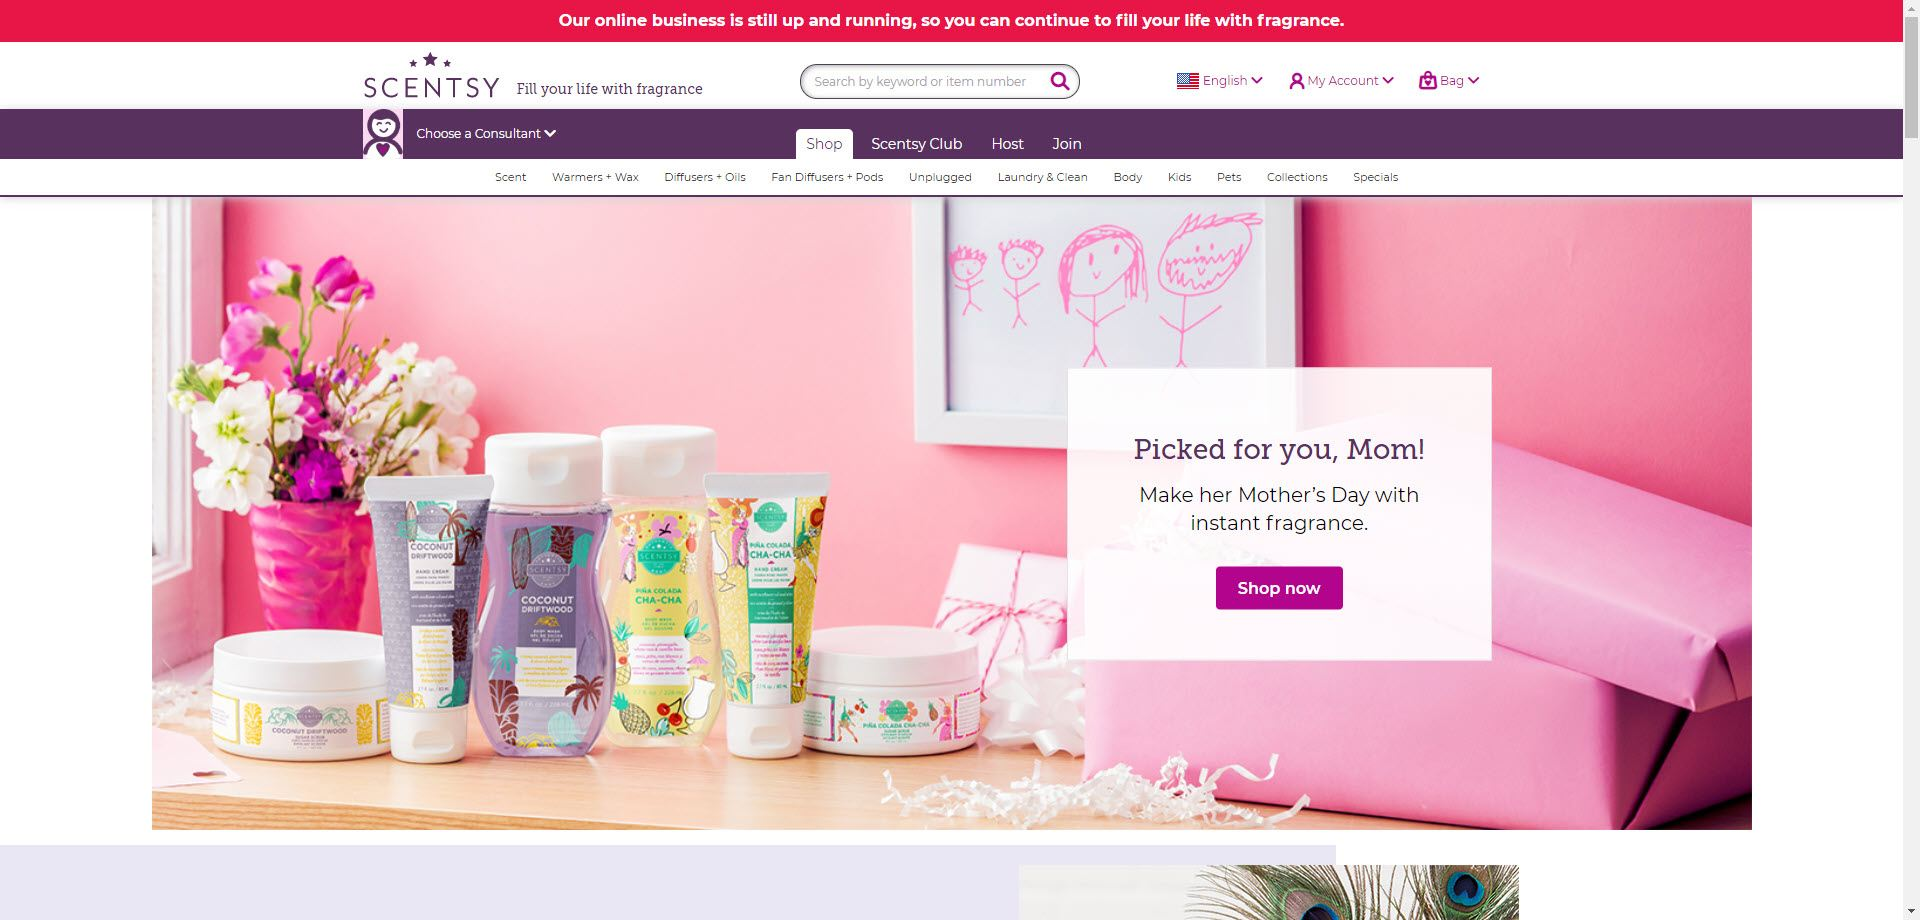 Scentsy MLM Review - Home